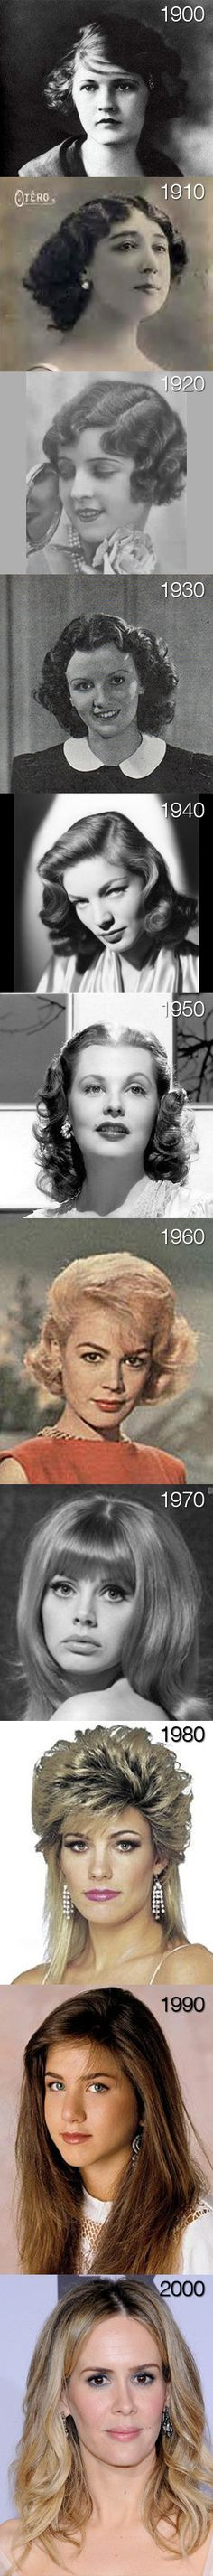 evolution of womens hair during the decades